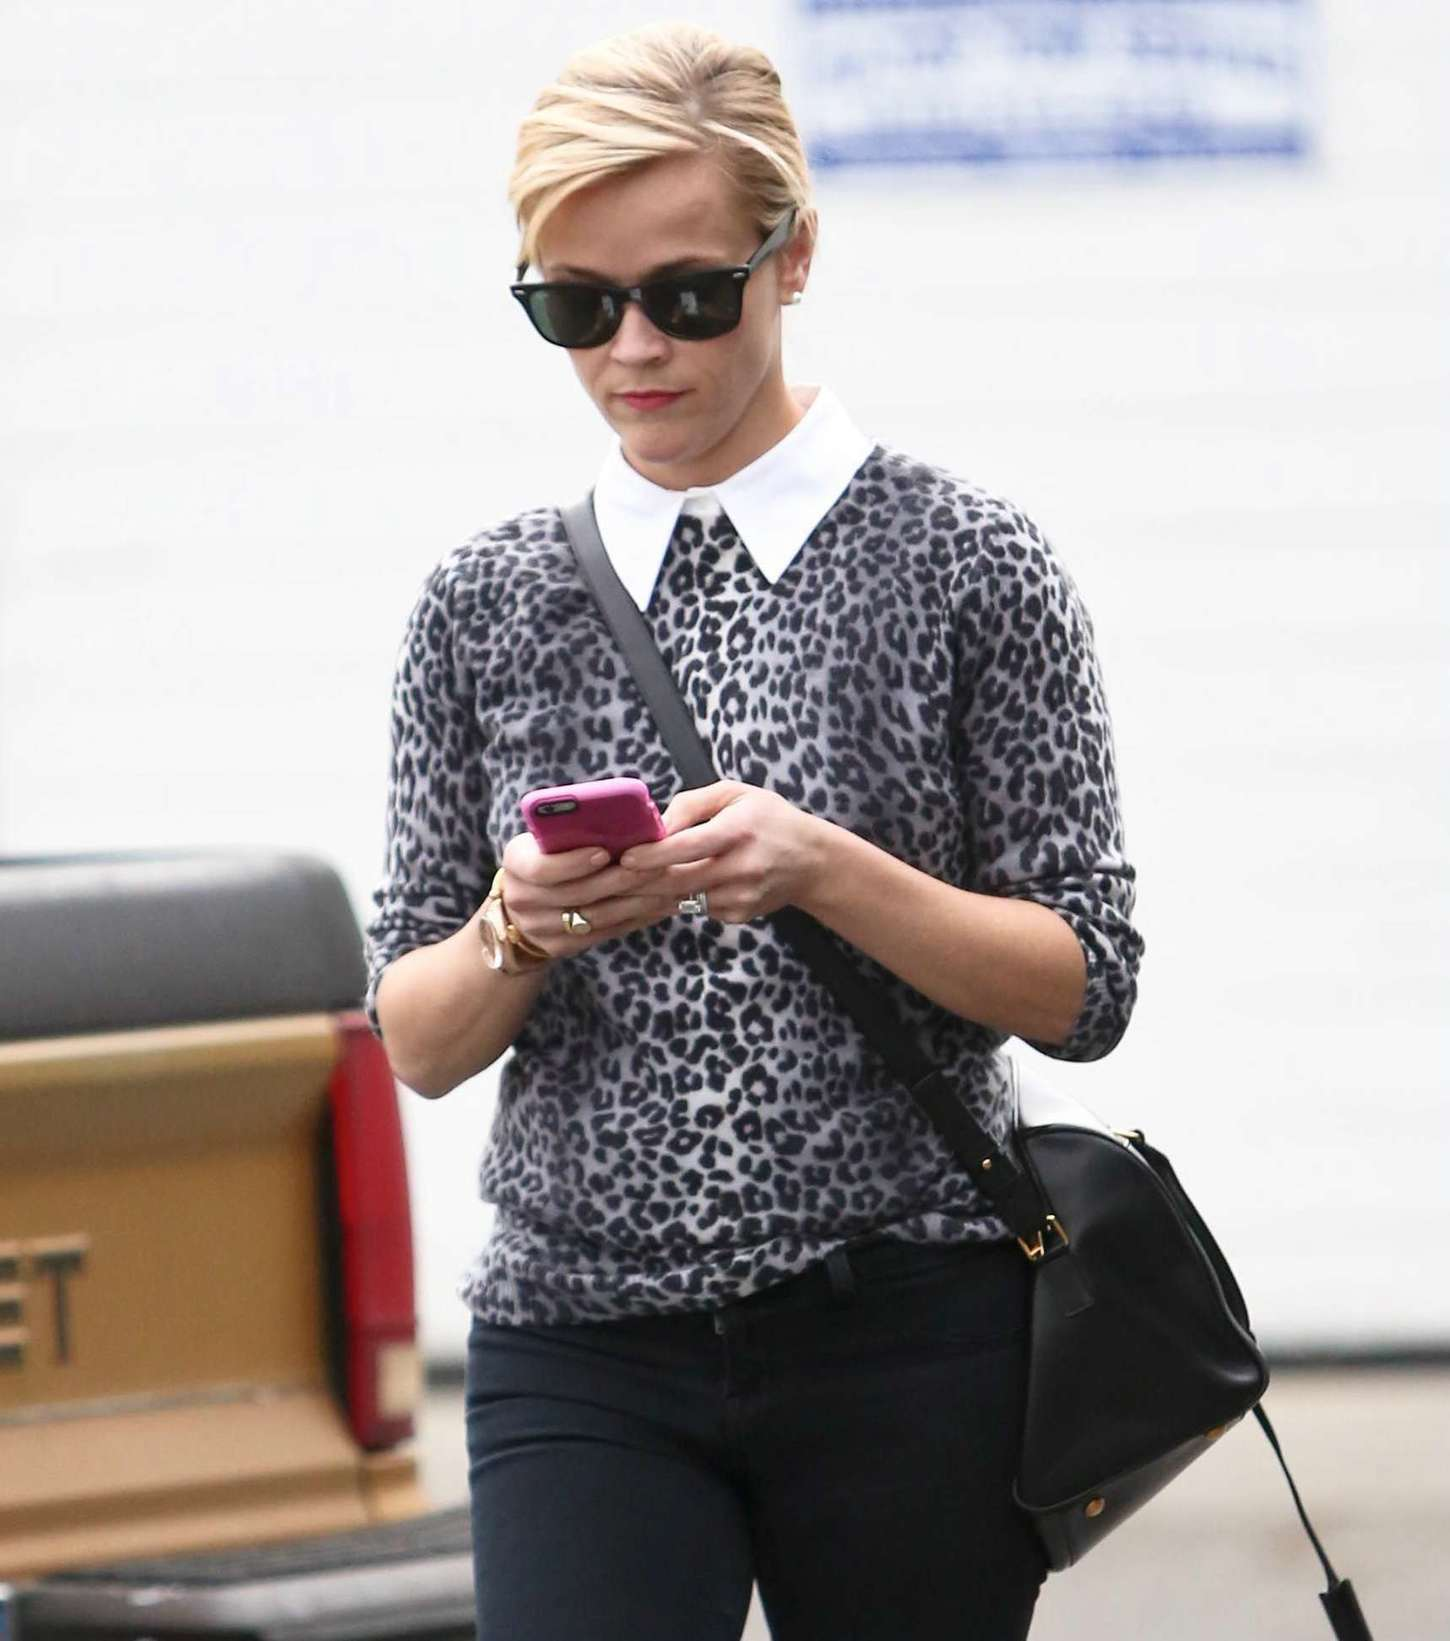 Reese Witherspoon 2014 : Reese Witherspoon in Tight Jeans -08